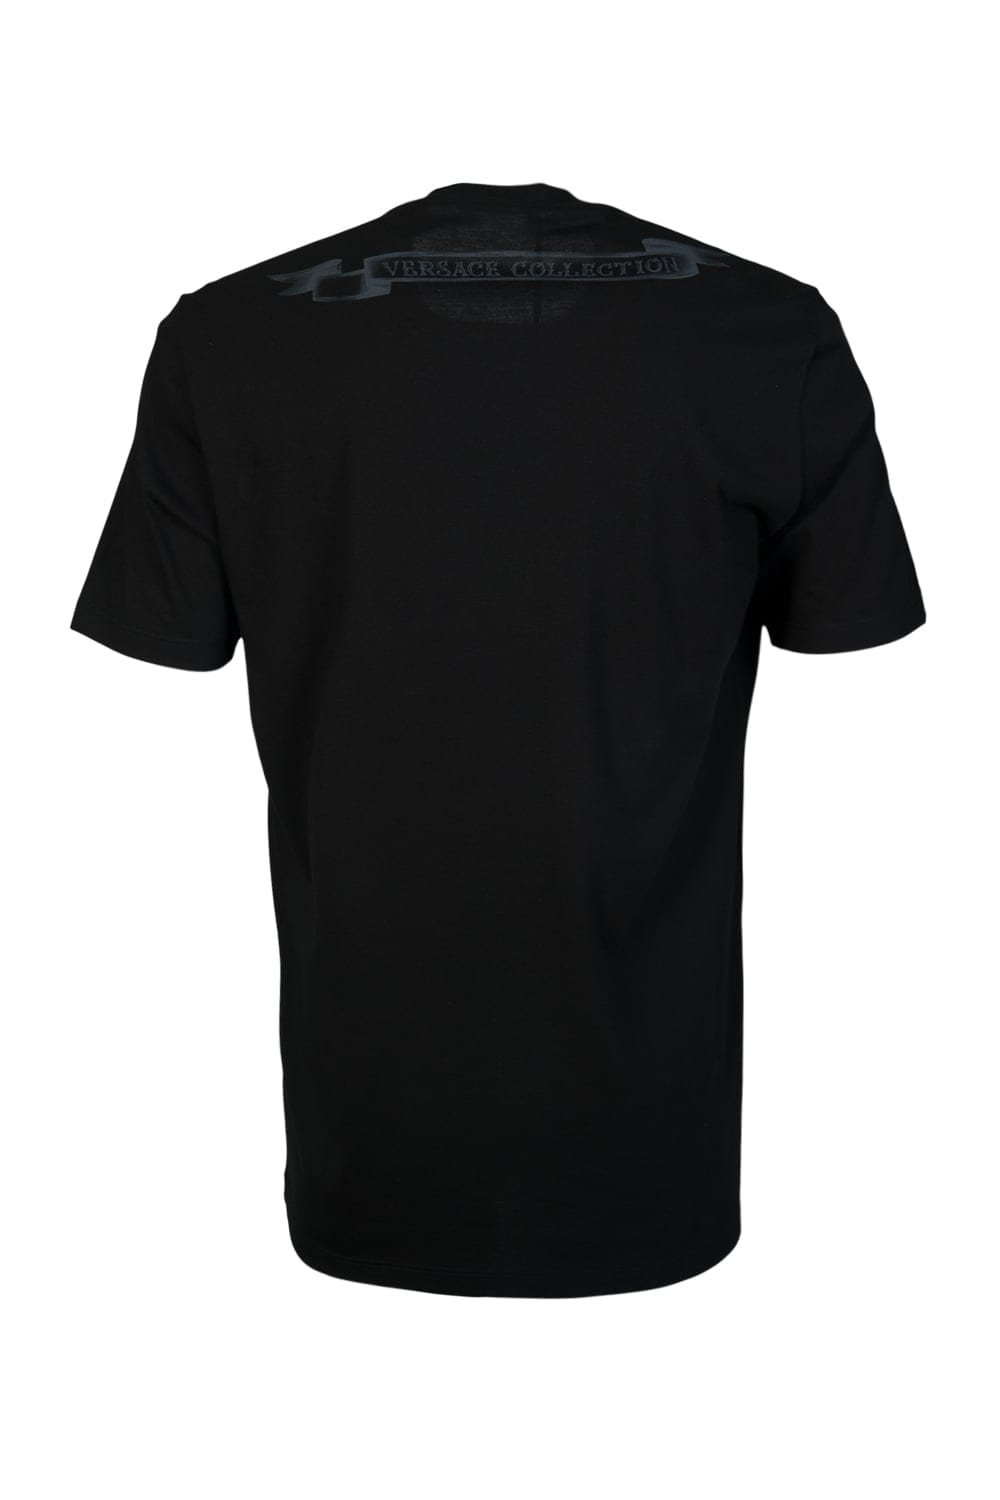 versace t shirt slim fit v800683vj00260 v7008 versace from sage clothing uk. Black Bedroom Furniture Sets. Home Design Ideas